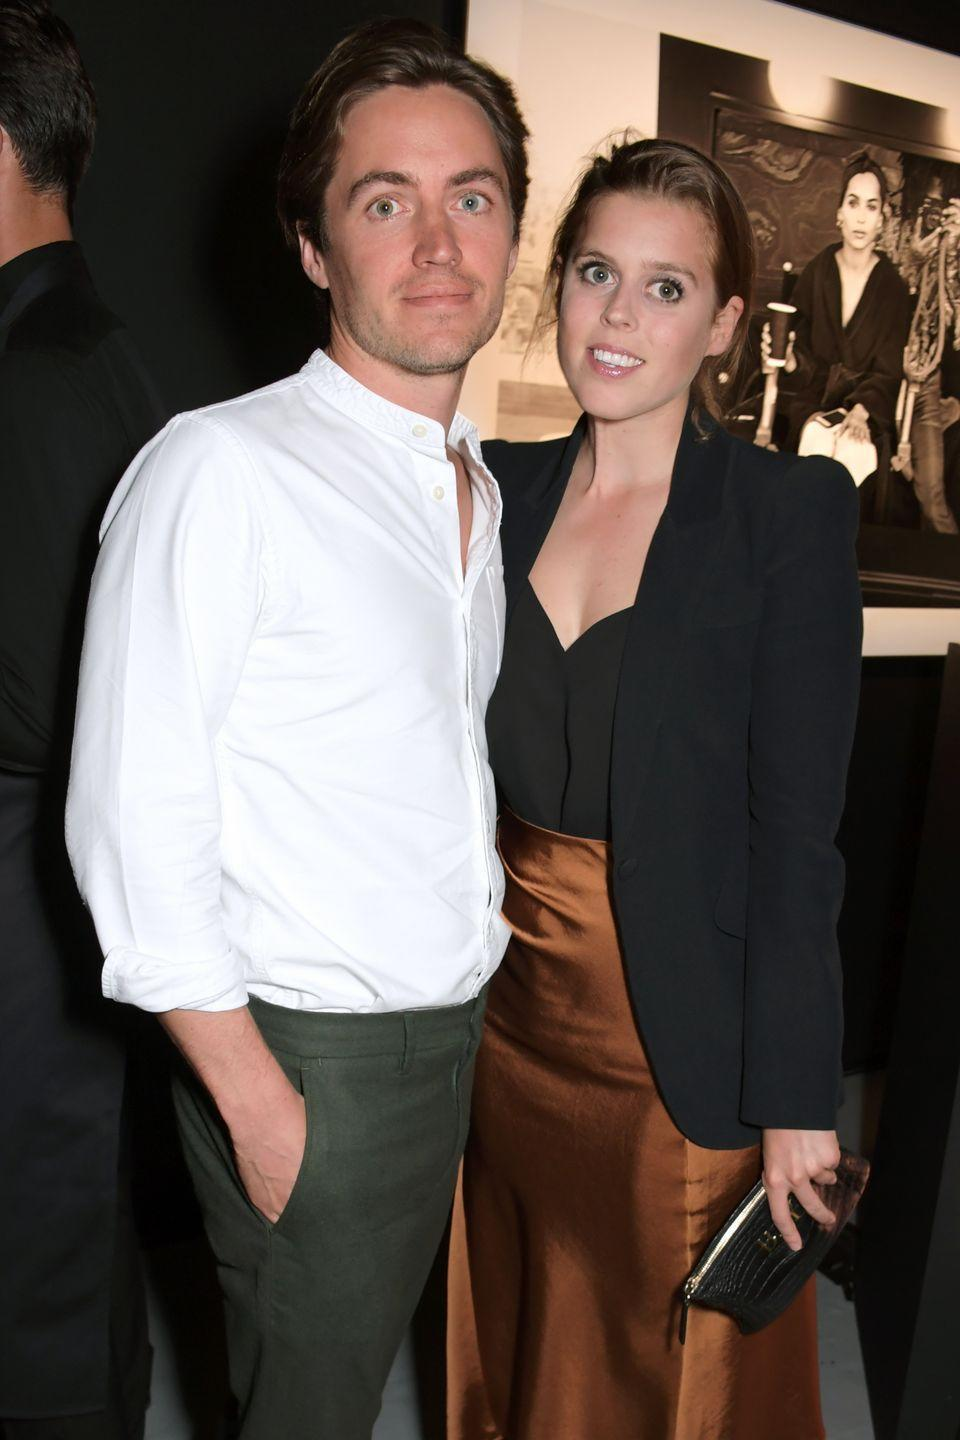 "<p>Much like her sister's wedding, when Princess Beatrice walks down the aisle with <a href=""https://www.harpersbazaar.com/celebrity/latest/a25235705/who-is-princess-beatrice-boyfriend-edoardo-mapelli-mozzi/"" rel=""nofollow noopener"" target=""_blank"" data-ylk=""slk:Edoardo Mapelli Mozzi"" class=""link rapid-noclick-resp"">Edoardo Mapelli Mozzi</a>, the BBC won't be screening it. <a href=""https://www.mirror.co.uk/news/uk-news/princess-beatrices-royal-wedding-wont-21214045"" rel=""nofollow noopener"" target=""_blank"" data-ylk=""slk:The Mirror"" class=""link rapid-noclick-resp""><em>The Mirror</em></a> reported that the BBC would not broadcast the whole wedding, instead offering news coverage of the event at intervals throughout the day. It's unclear whether ITV will nab the rights instead. At this point (April 2020), the wedding has been called off for now because of the coronavirus pandemic.</p>"